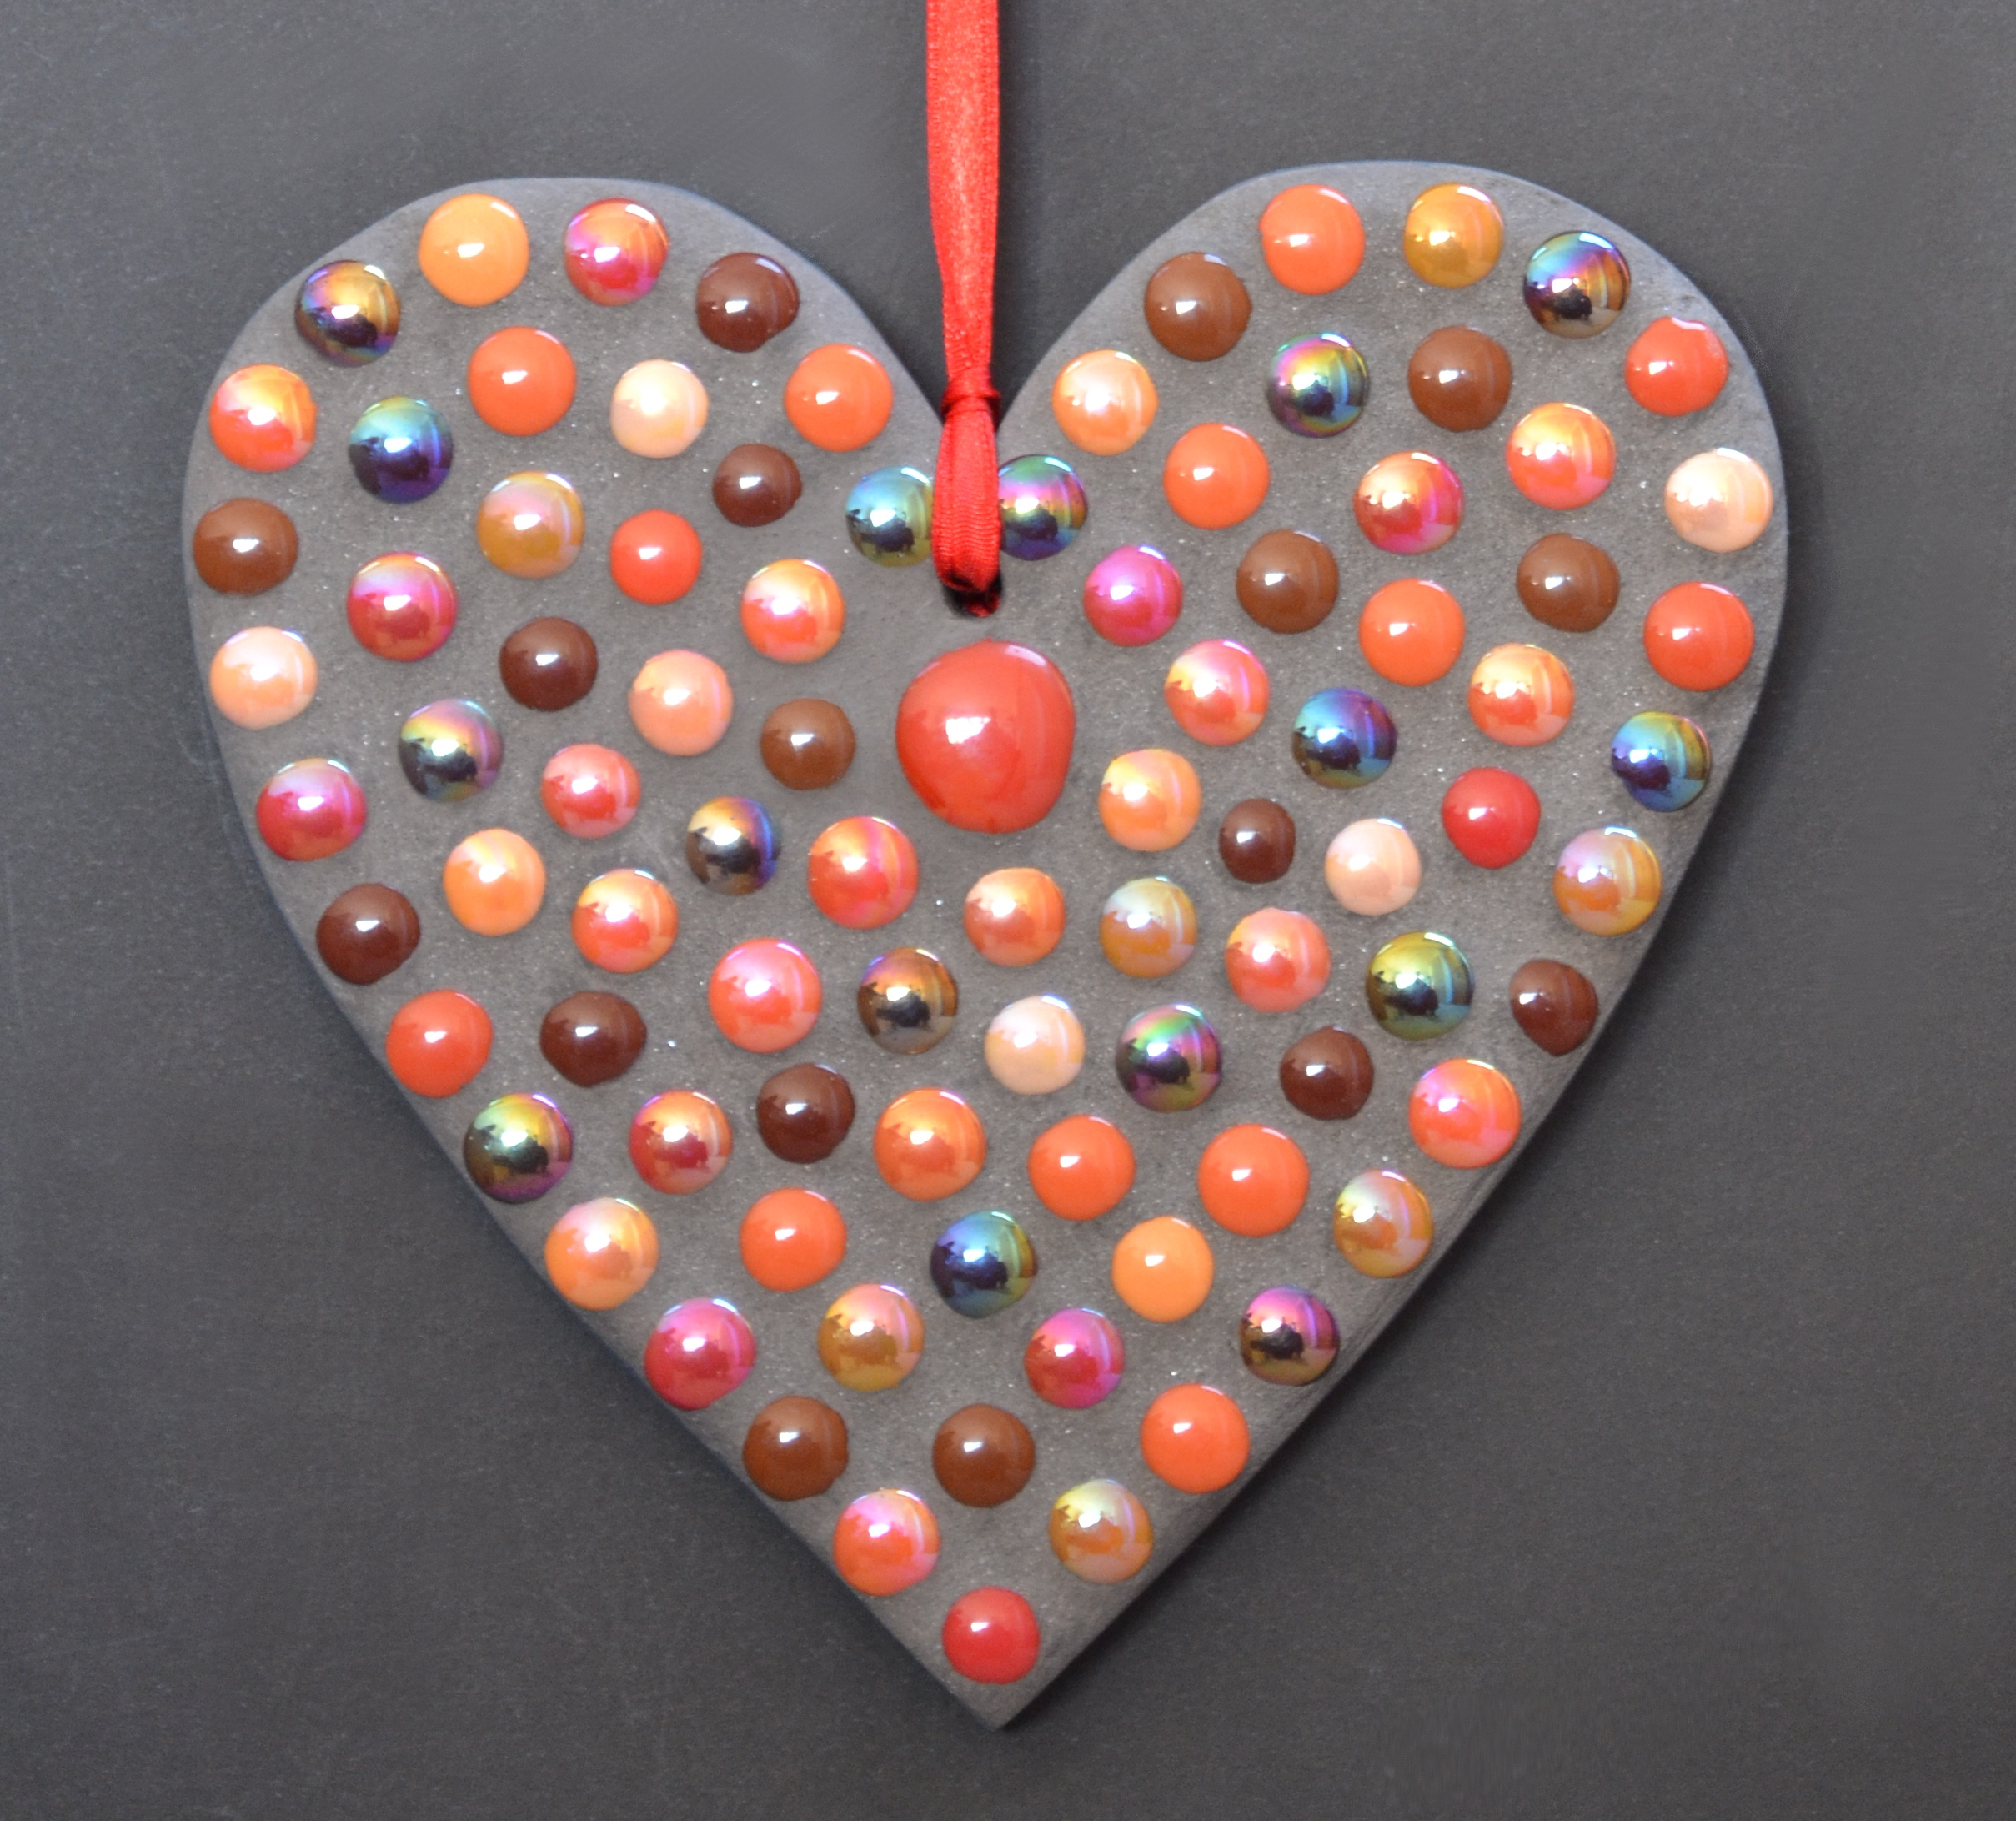 Heart smartie crop